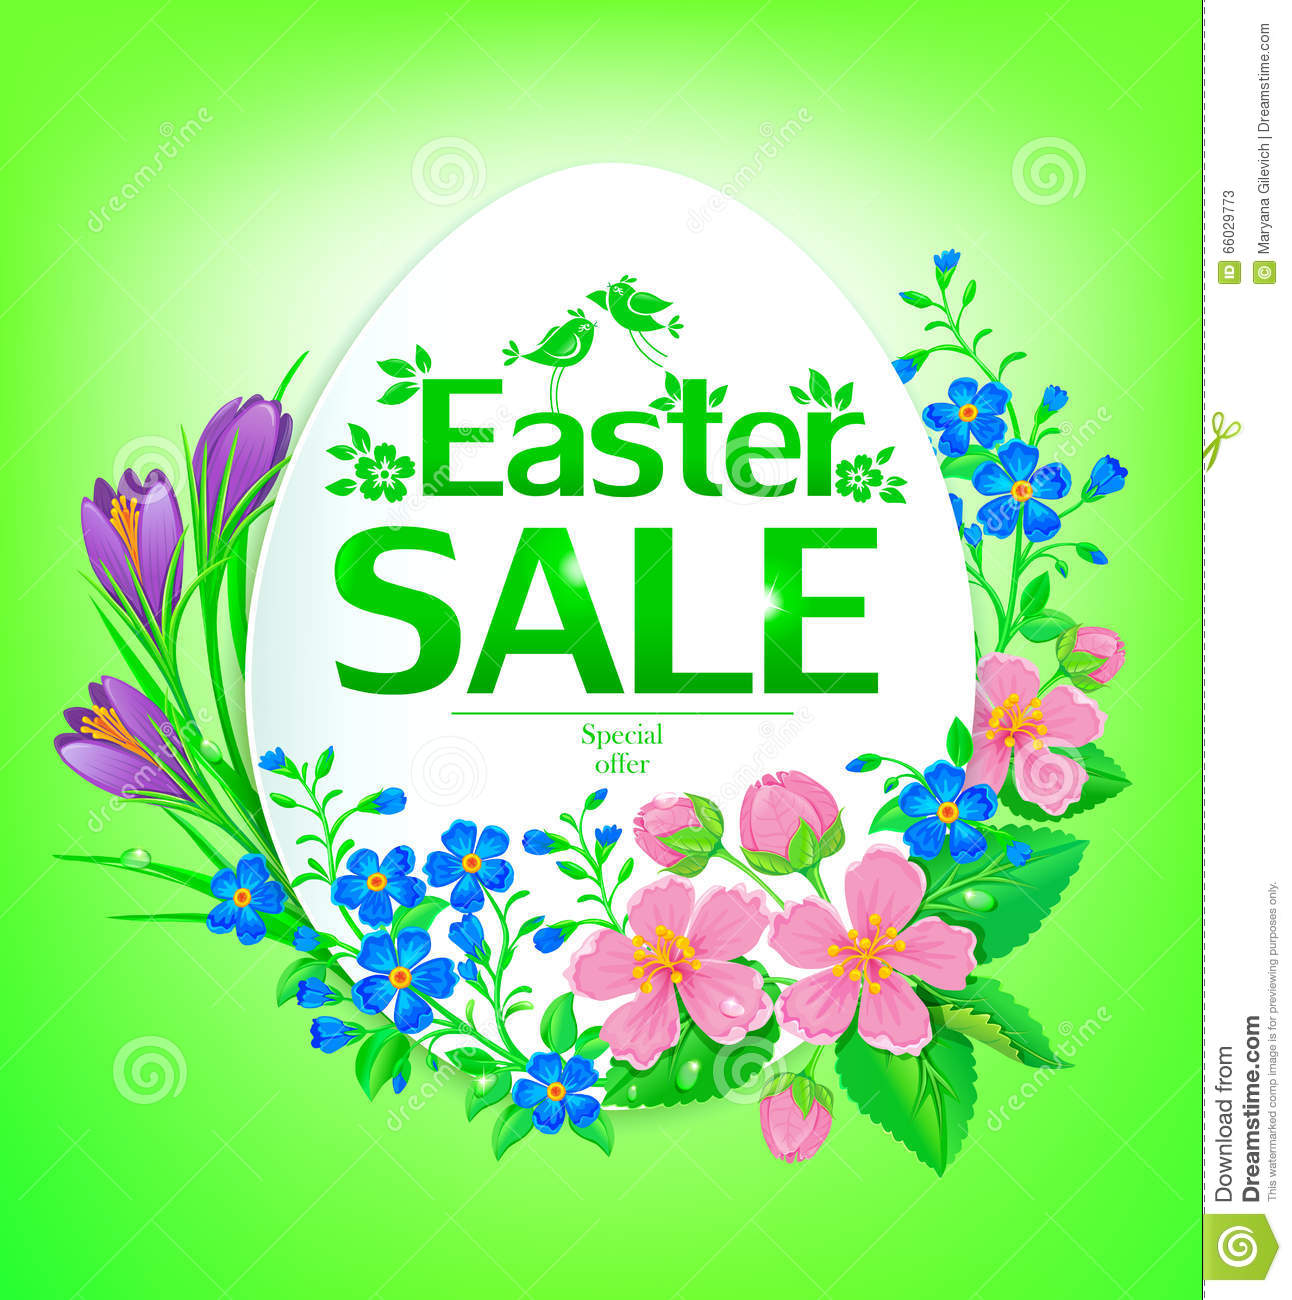 Easter Sale: Easter Sale Stock Vector. Illustration Of Background